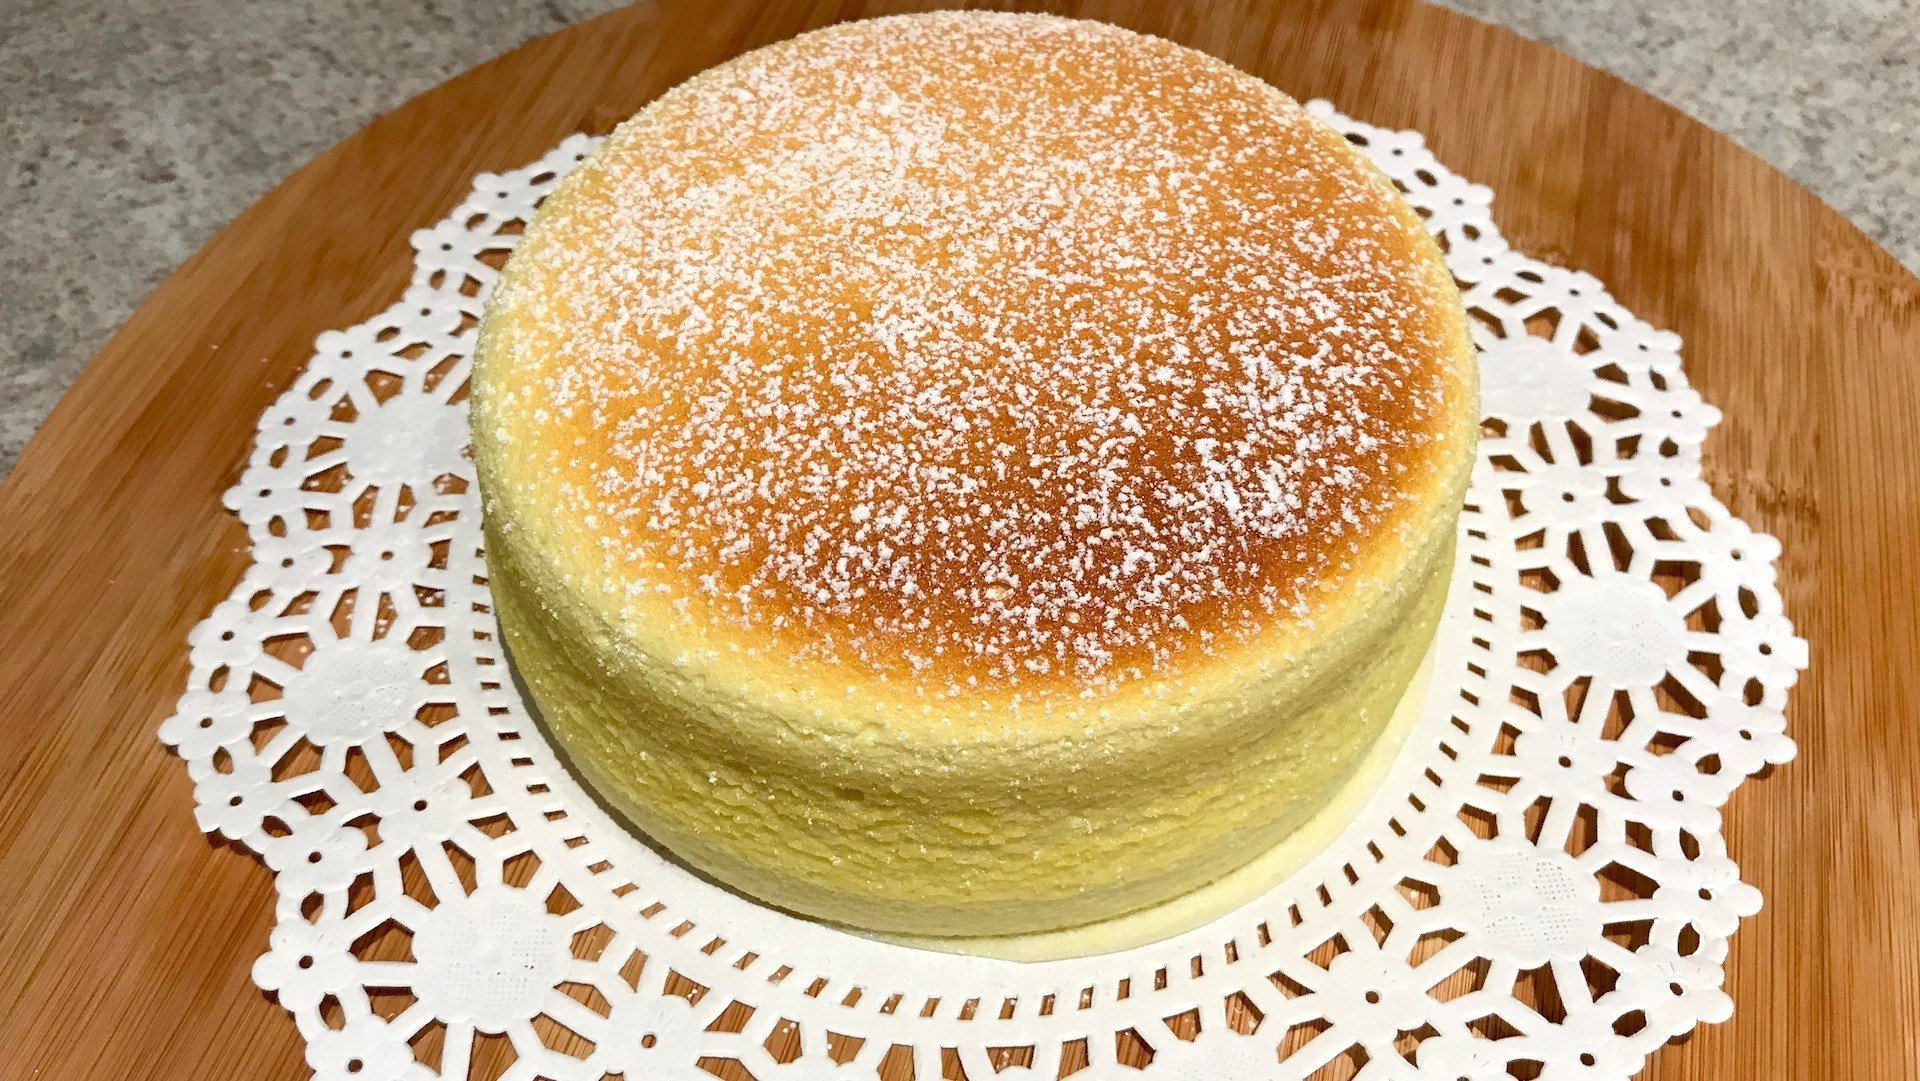 Japanese cheesecake photo